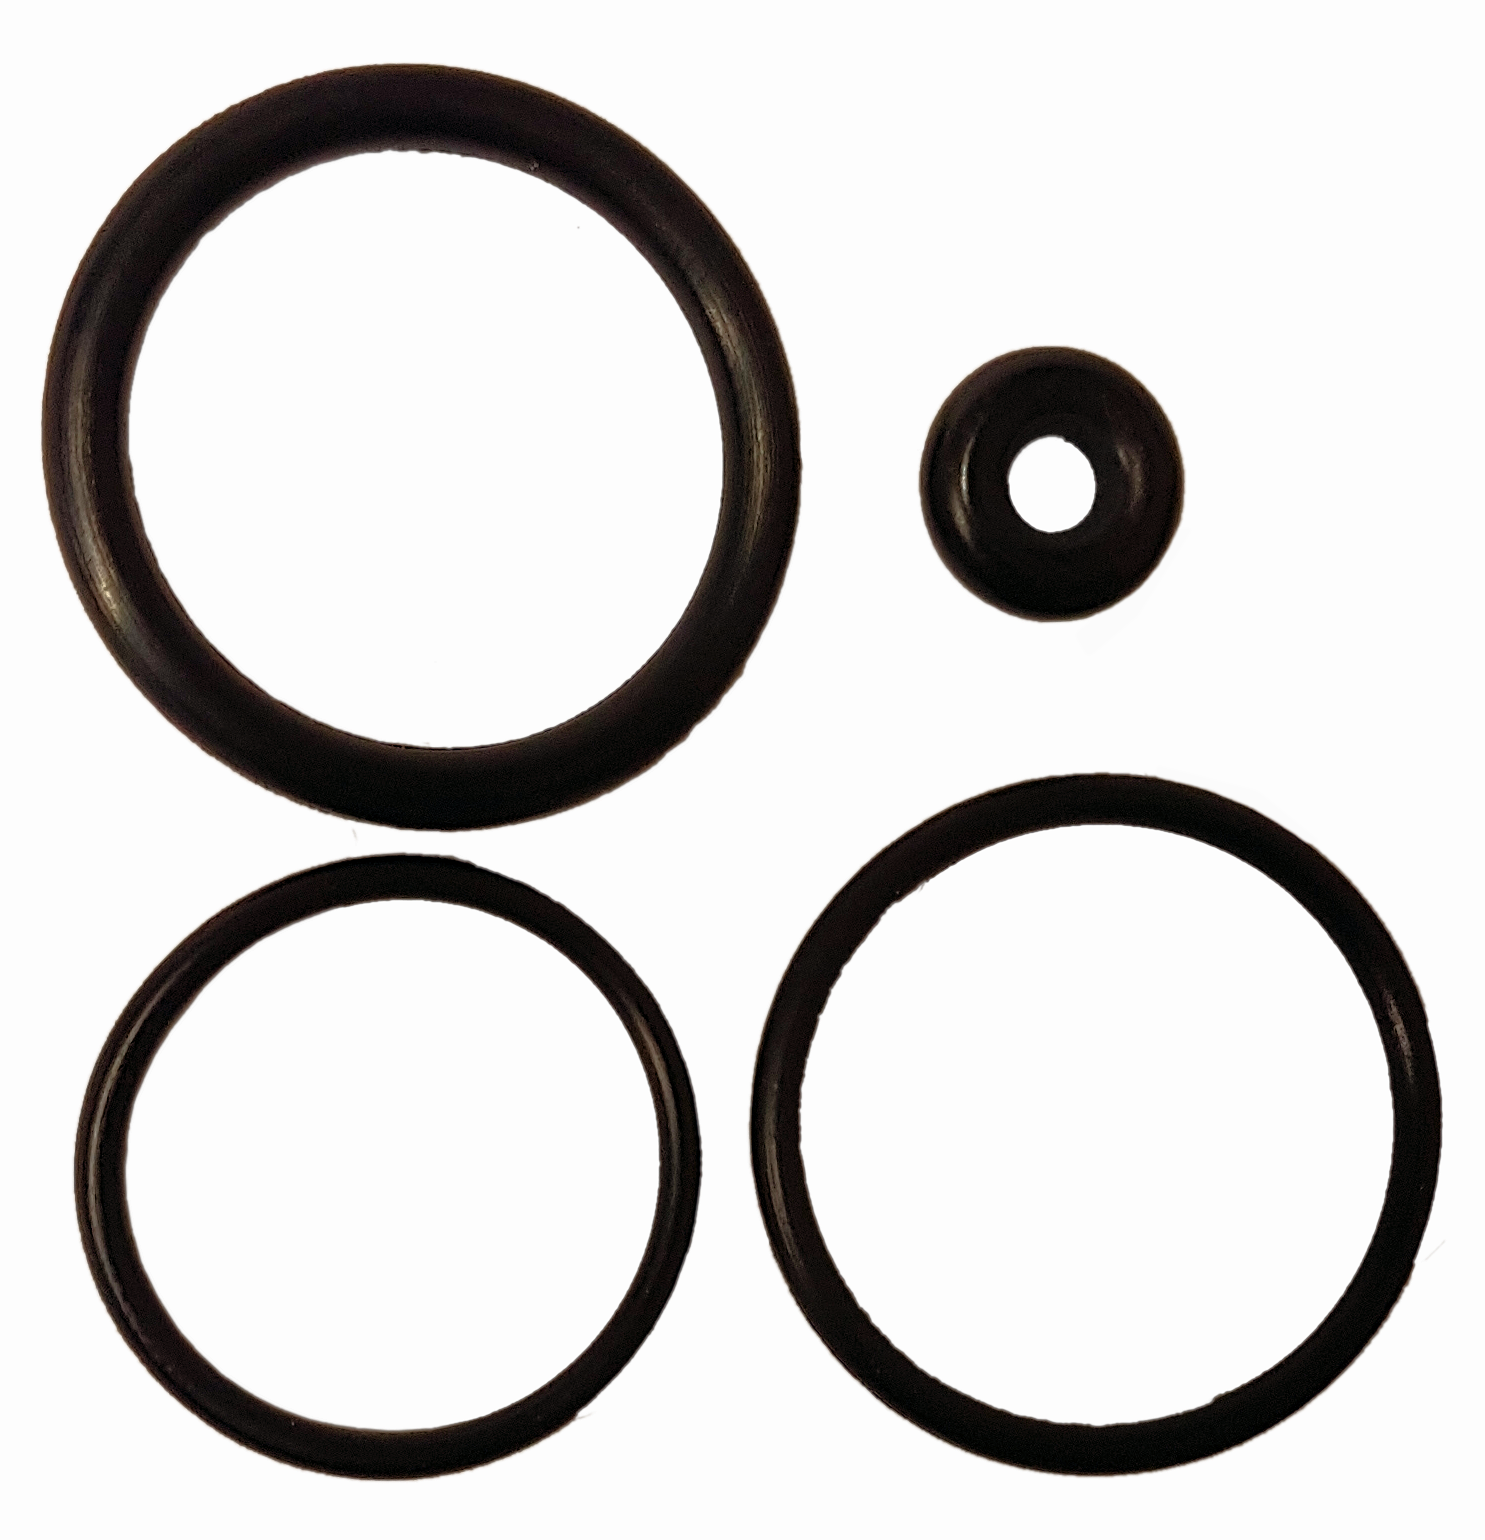 BSA Goldstar SE quickfill and gauge kit